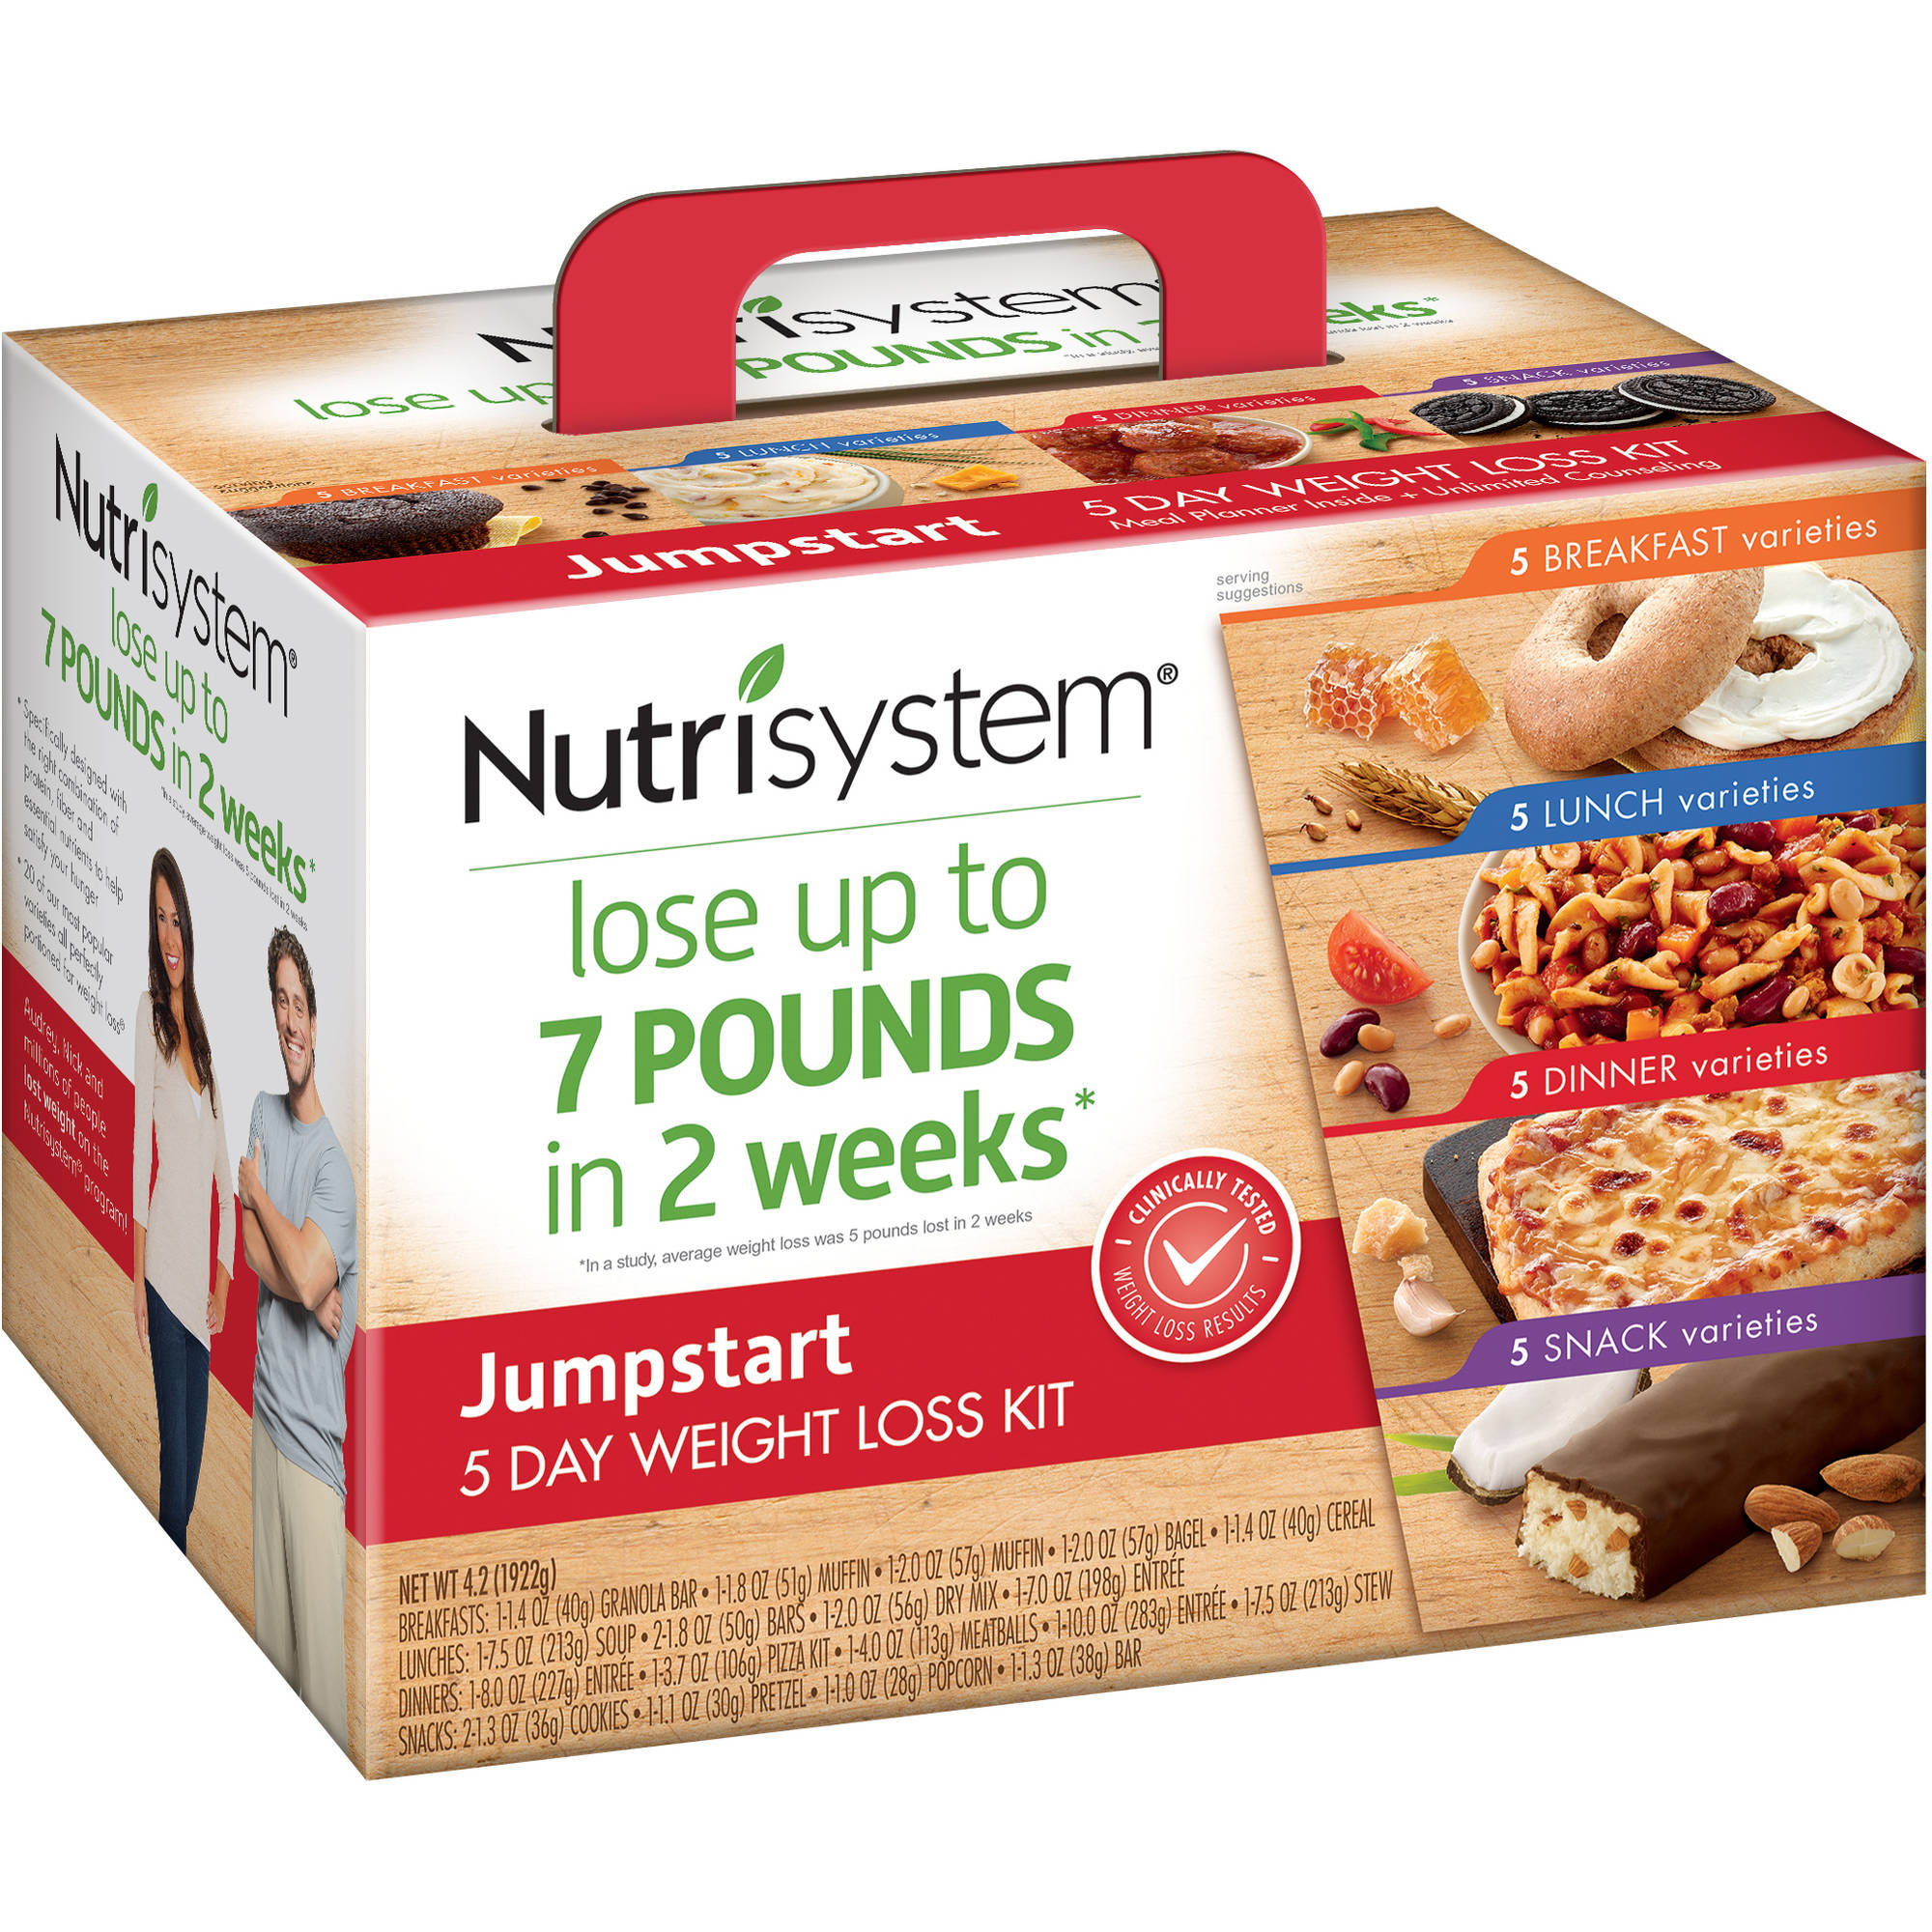 Nutrisystem 5 Day Jumpstart Weight Loss Kit